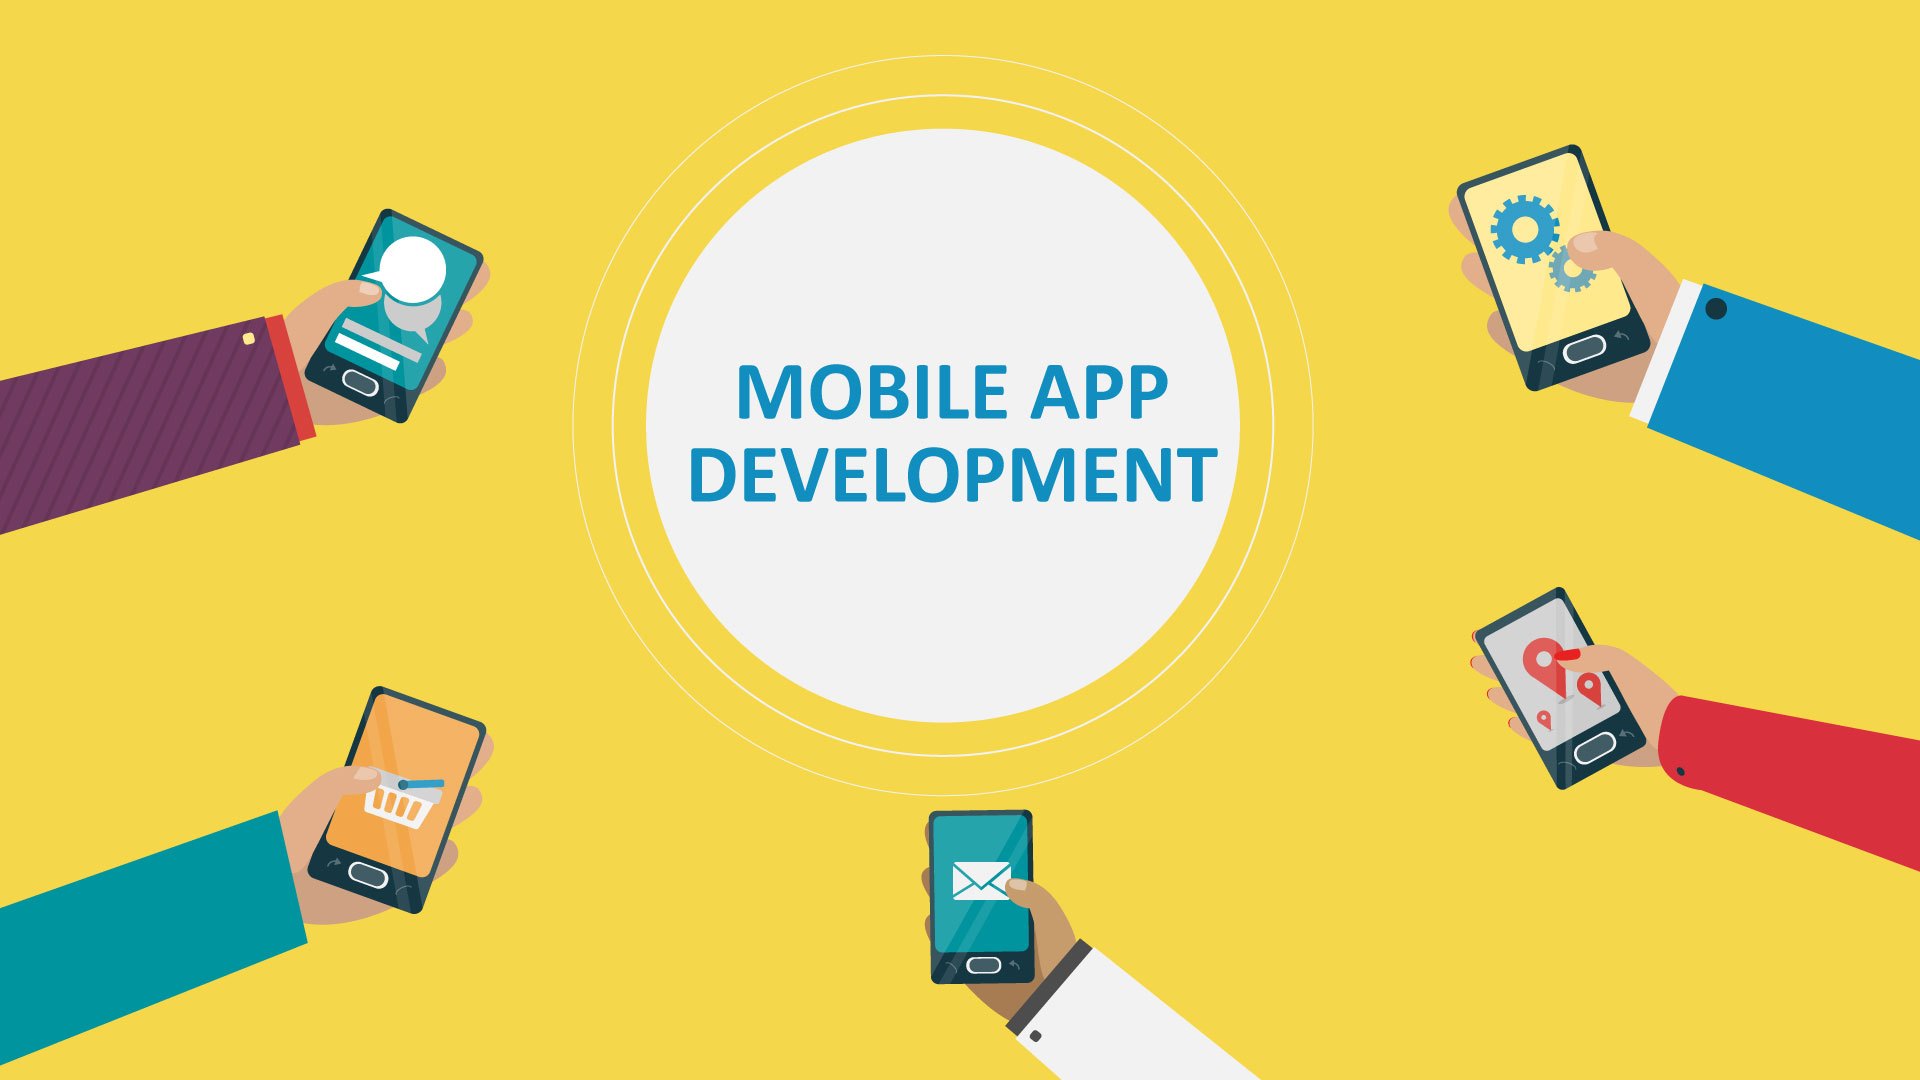 You will see the quality of service in the mobile App development company